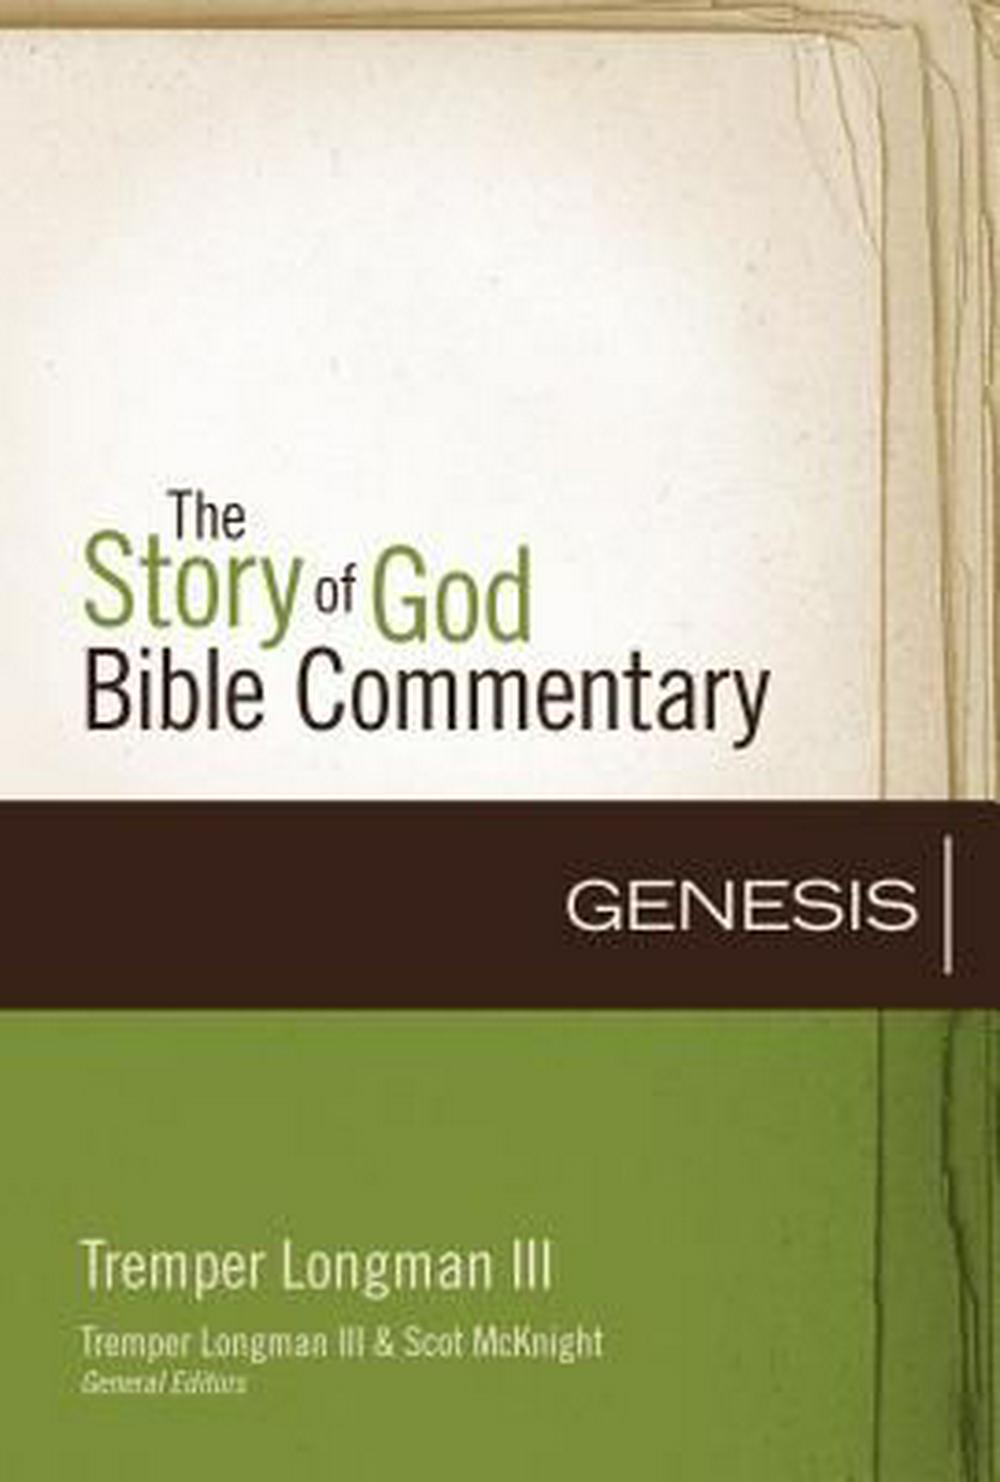 GenesisThe Story of God Bible Commentary